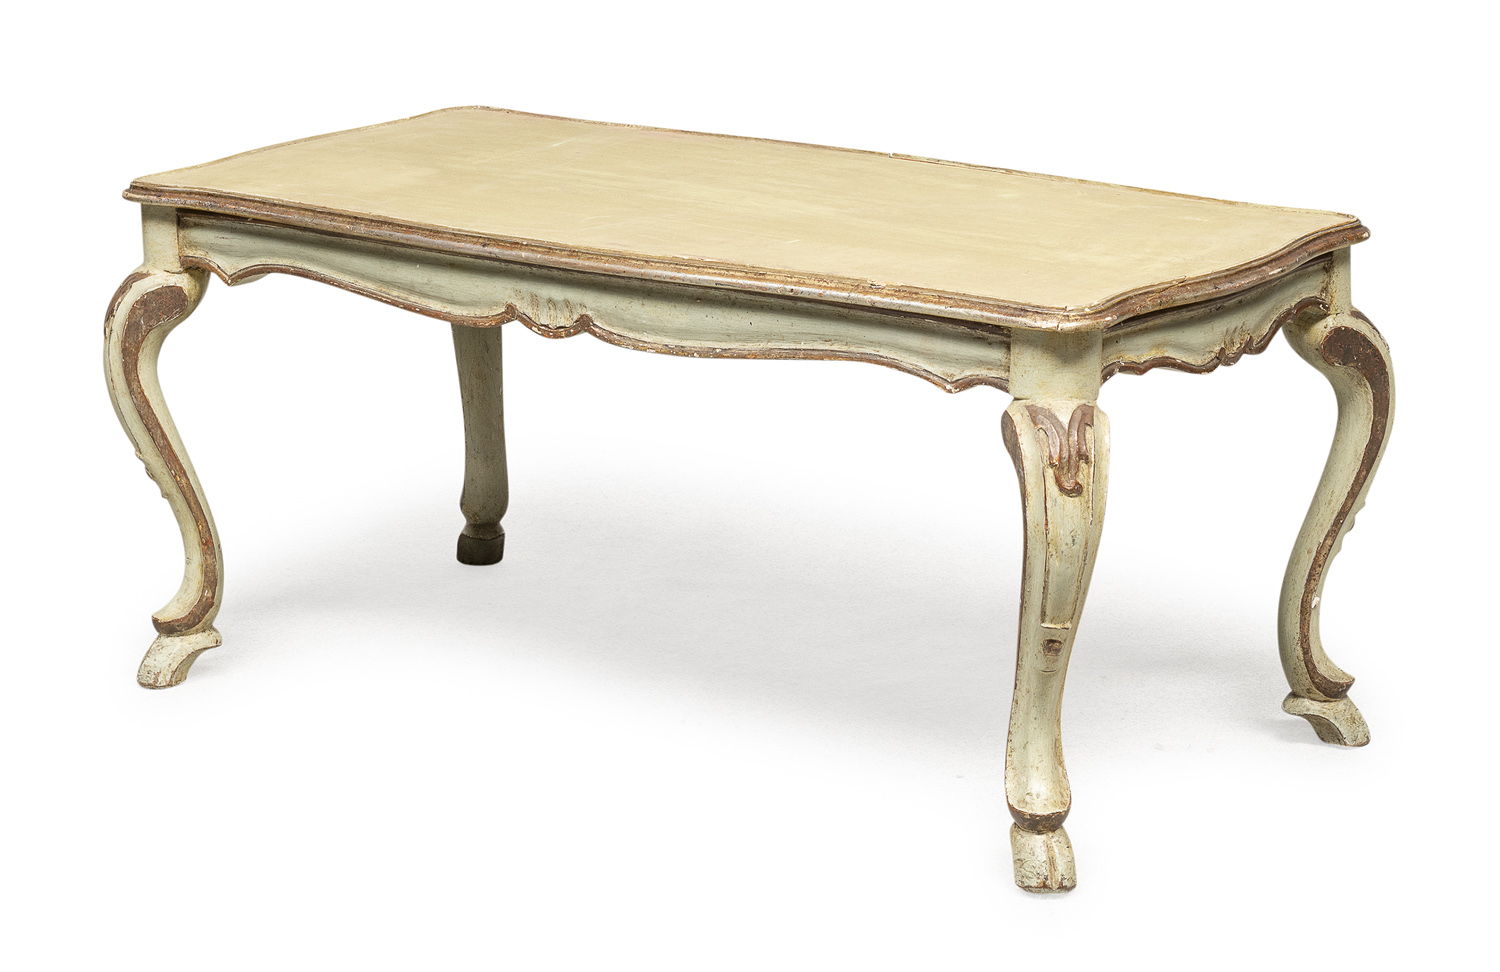 LACQUERED WOOD COFFEE TABLE 18th CENTURY ELEMENTS